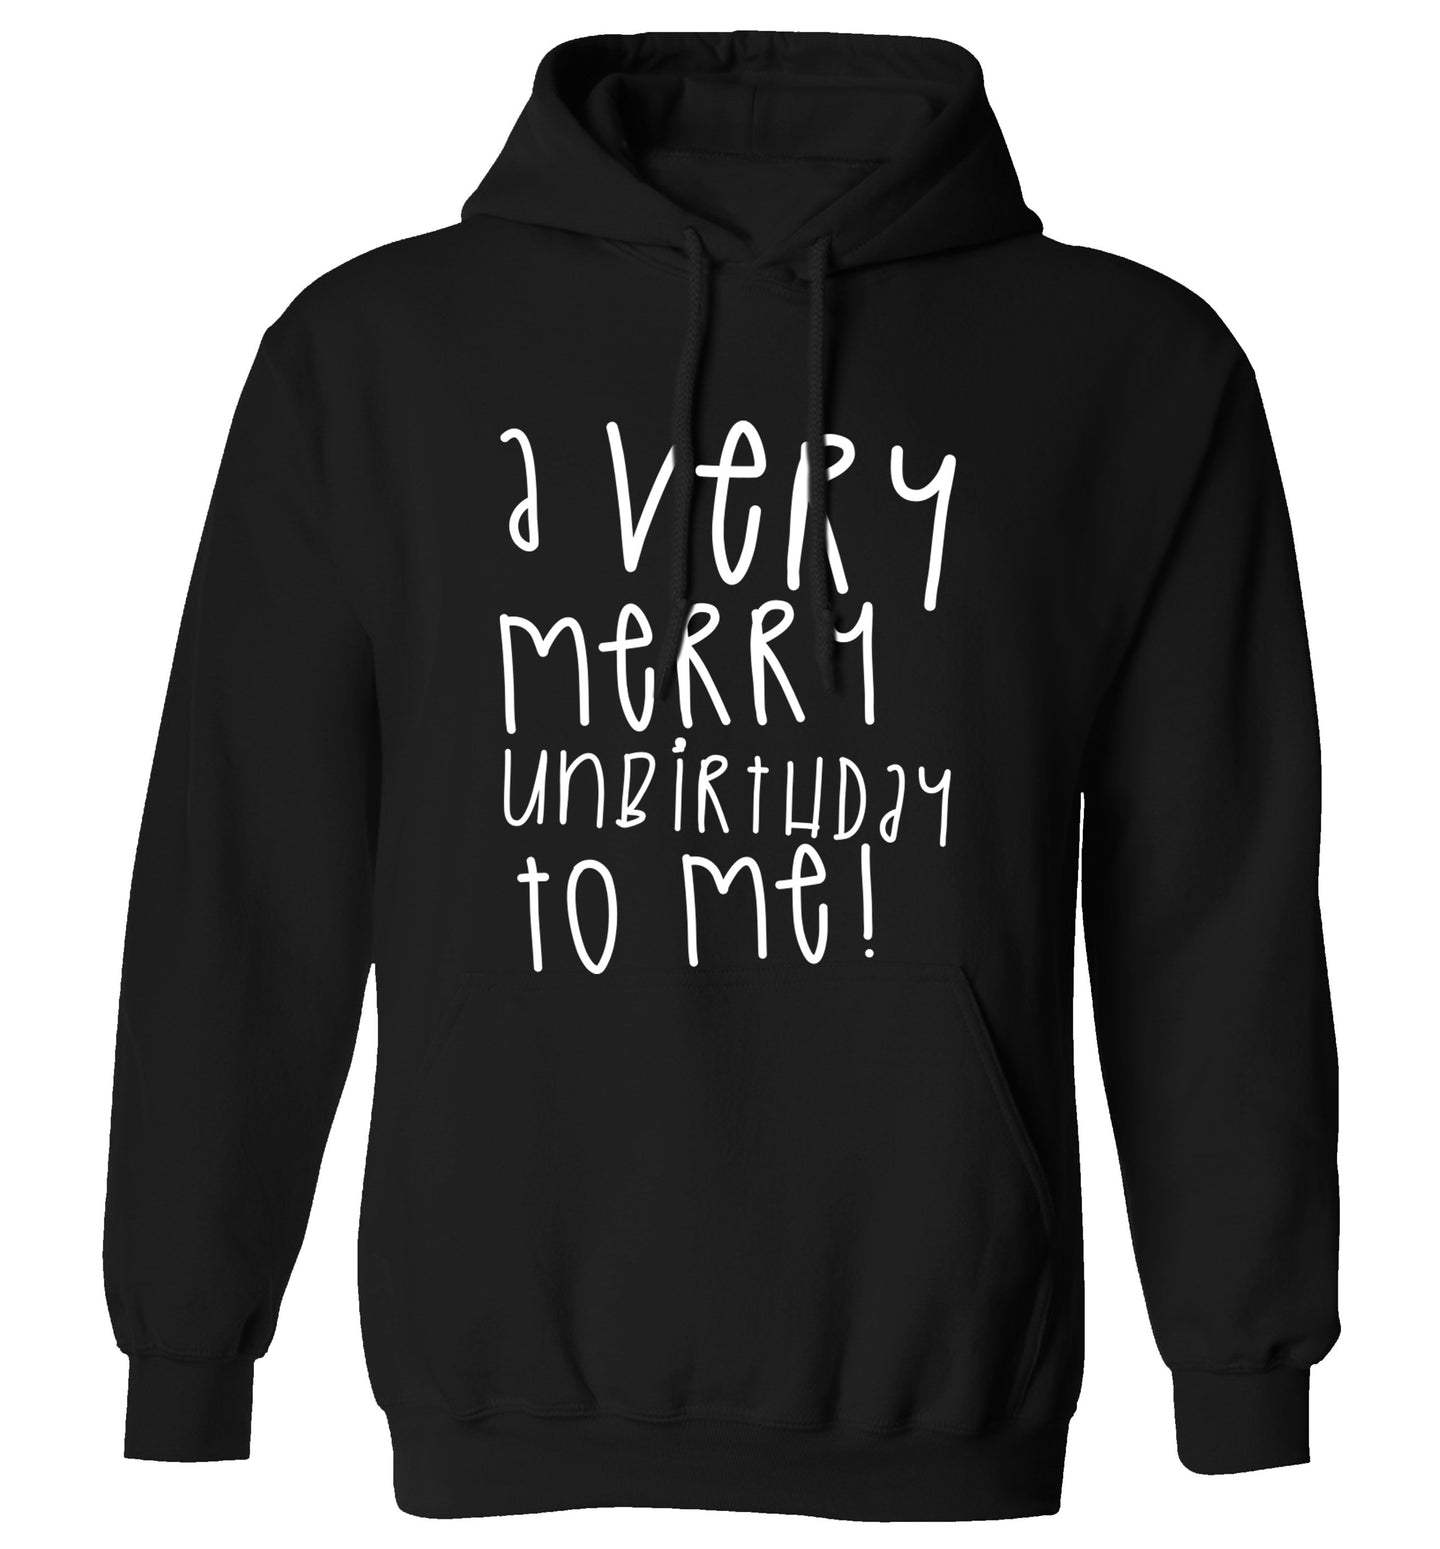 A very merry unbirthday to me! adults unisex black hoodie 2XL